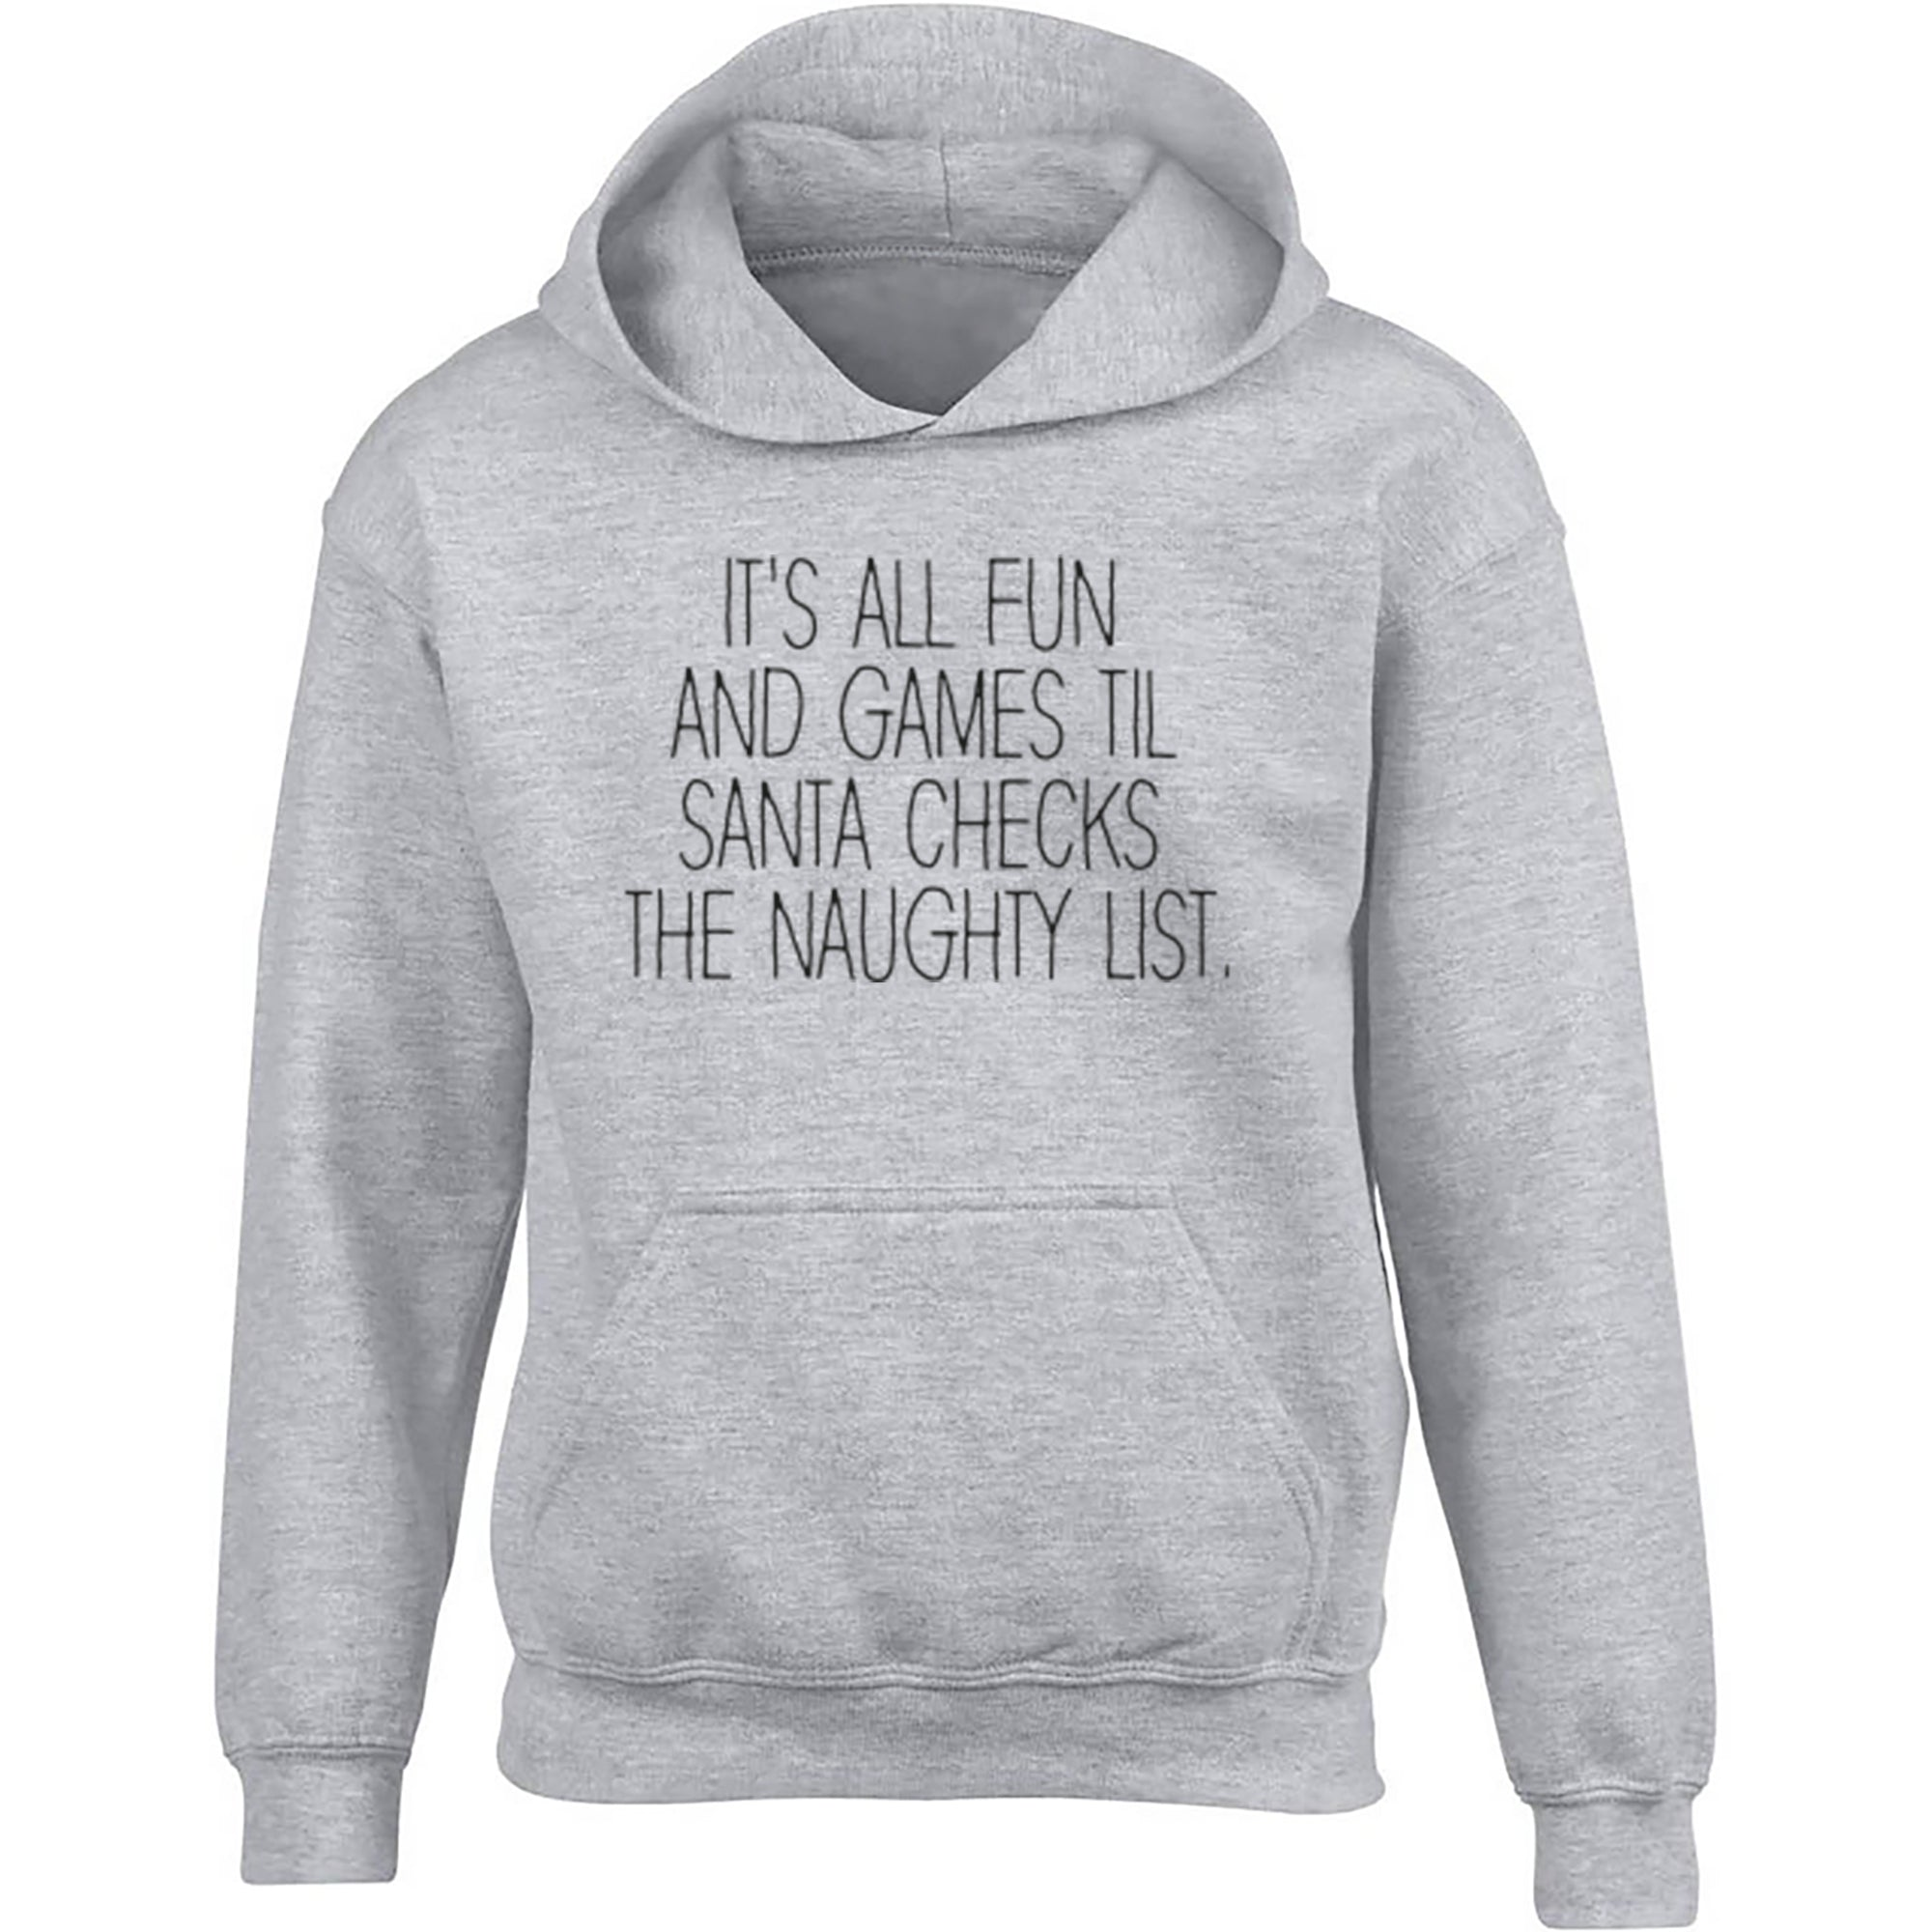 It's All Fun And Games Til Santa Checks The Naughty List Childrens Ages 3/4-12/14 Printed Hoodie S0896 - Illustrated Identity Ltd.